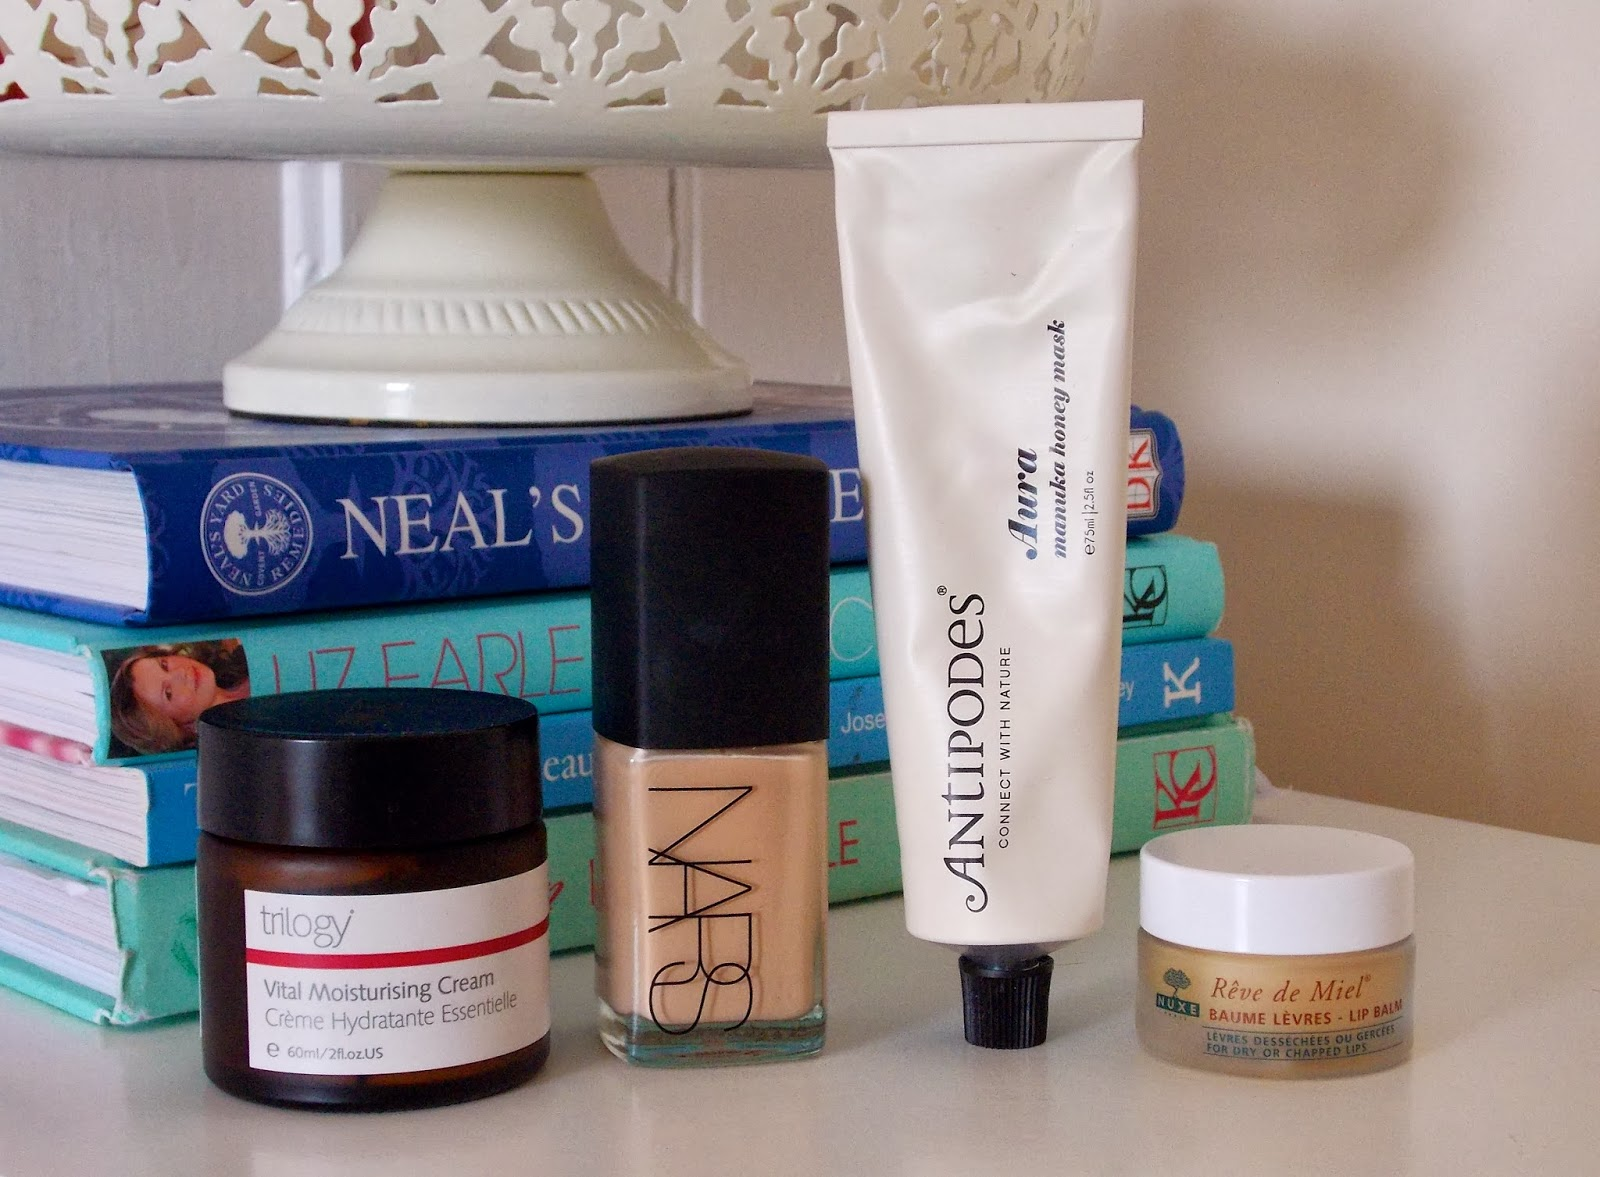 Trilogy Vital Moisturising Cream, Nars Sheer Glow Foundation, Antipodes Aura Manuka Honey Mask, Nuxe Reve de Miel Lip Balm